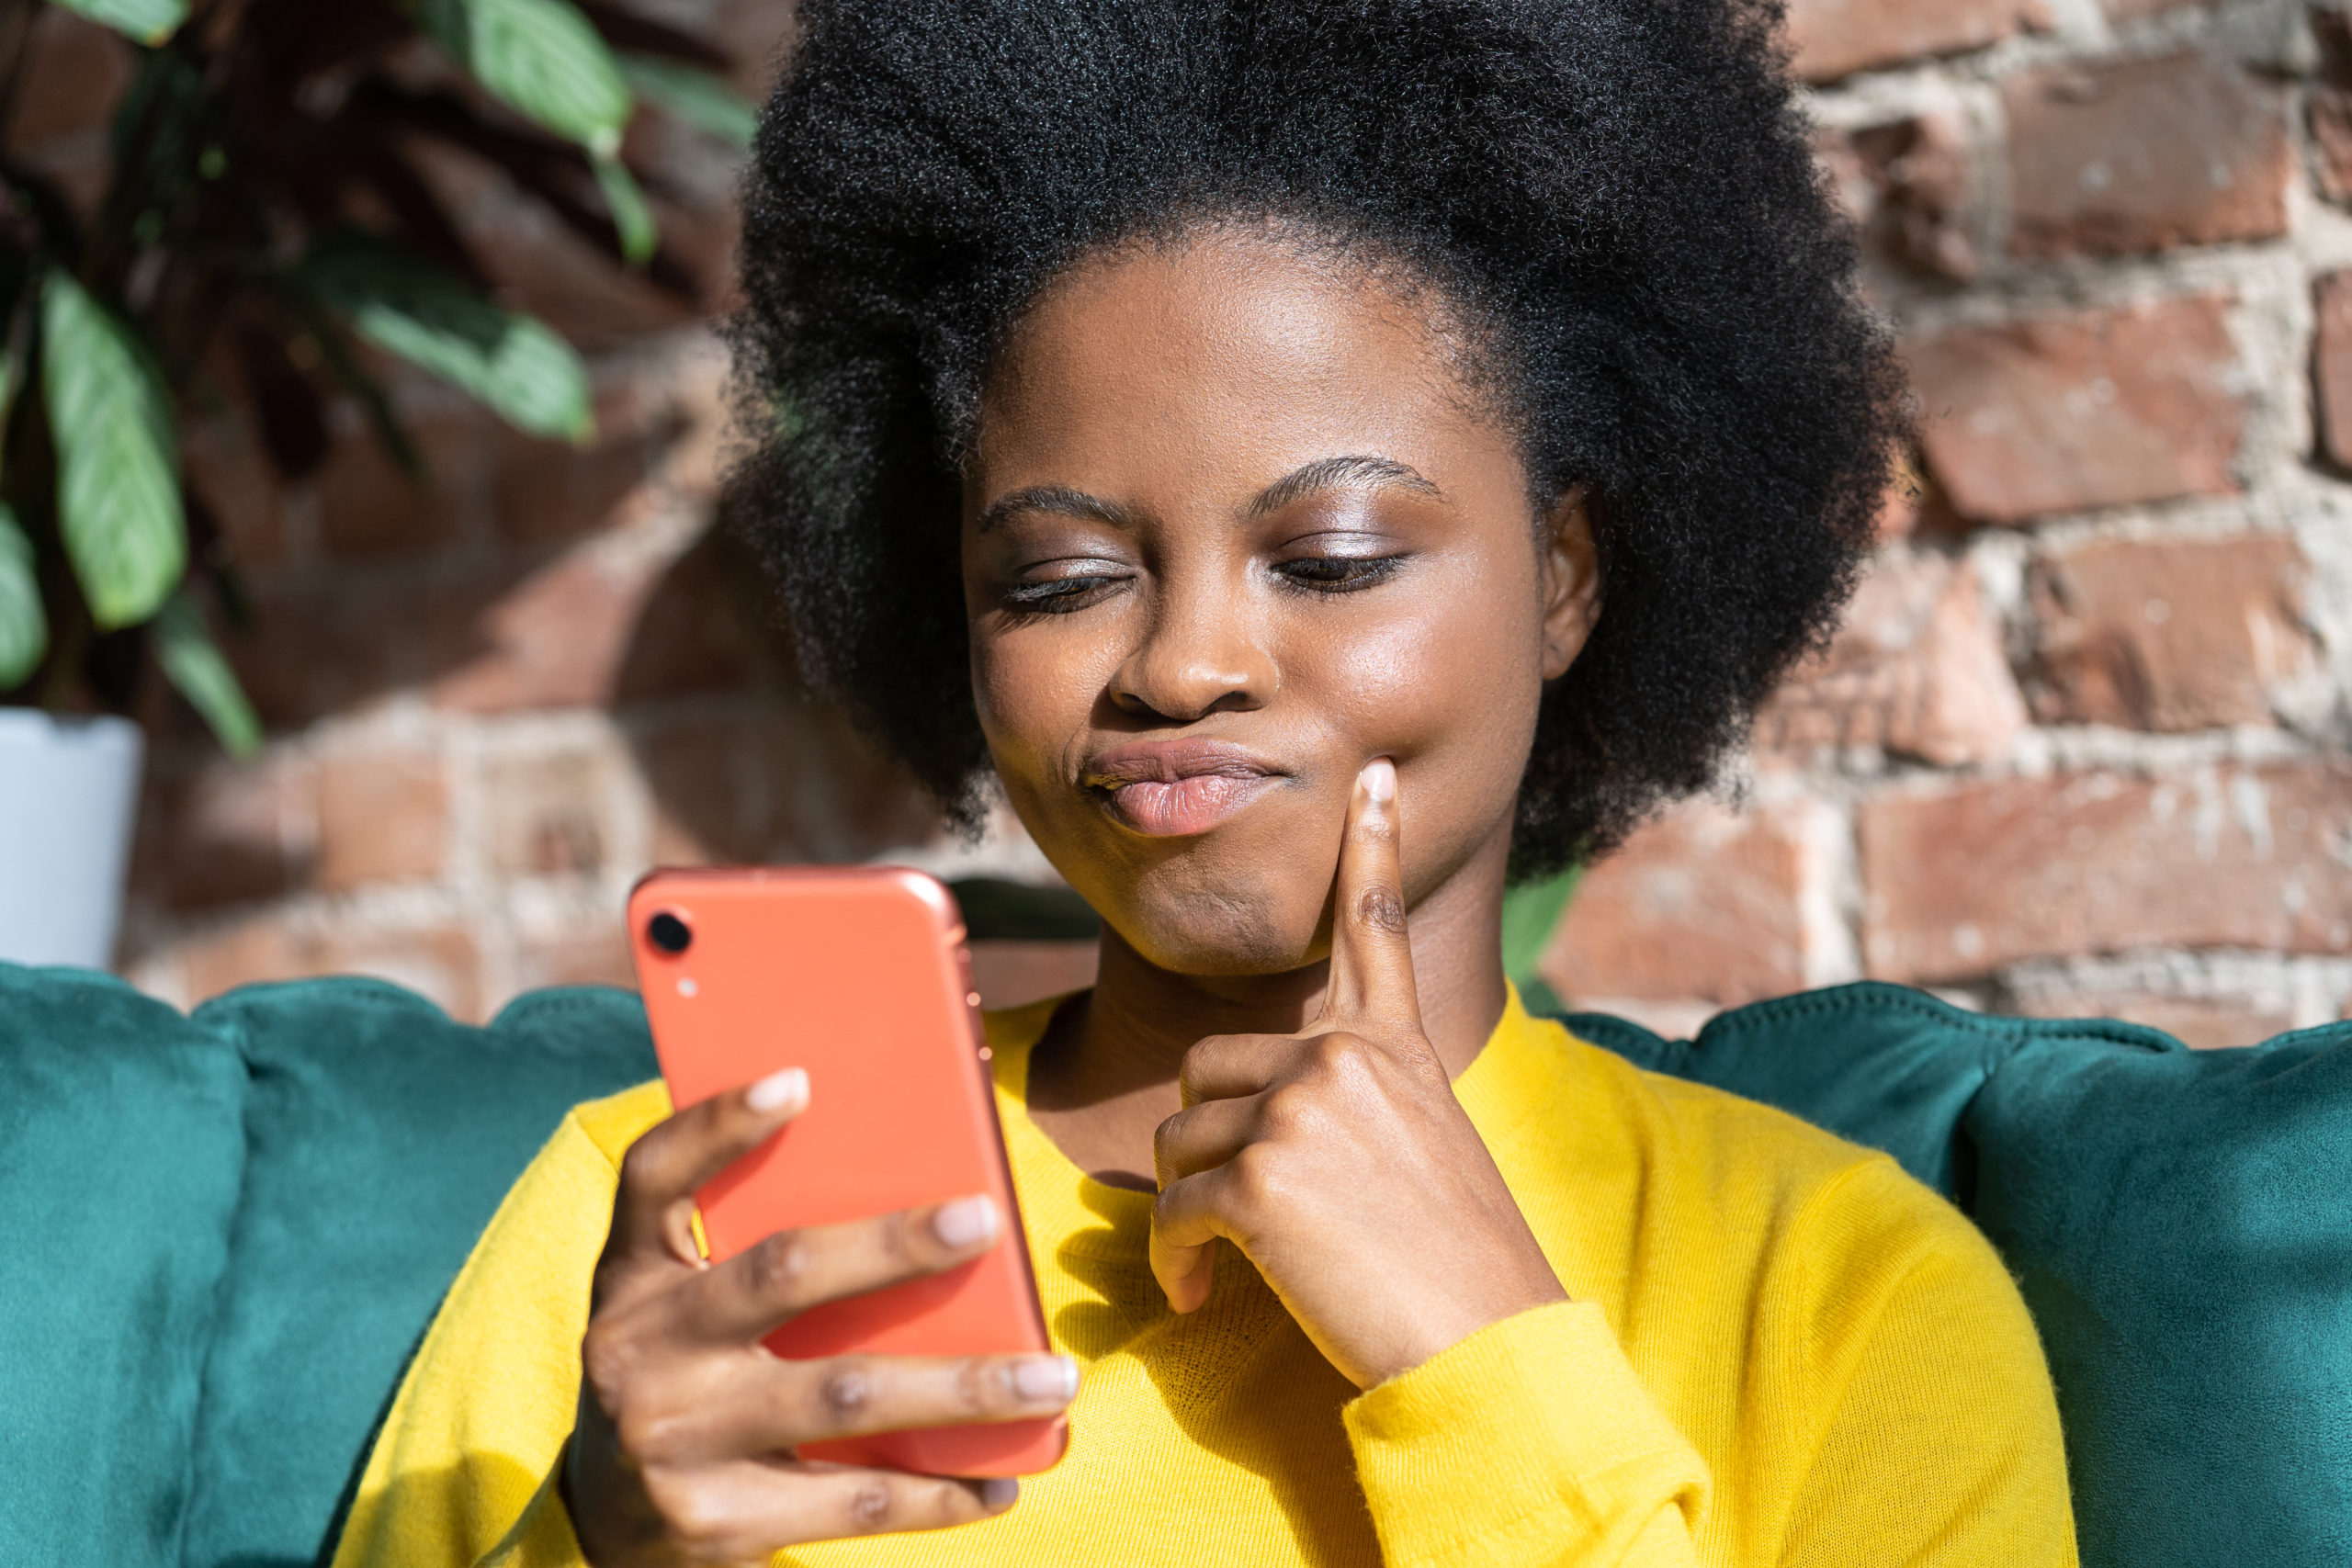 Afro-American woman ponders on how to answer question, thinks deeply about something, using mobile phone, tries to made up good message, keeps index finger on cheek, sitting on armchair, indoors.